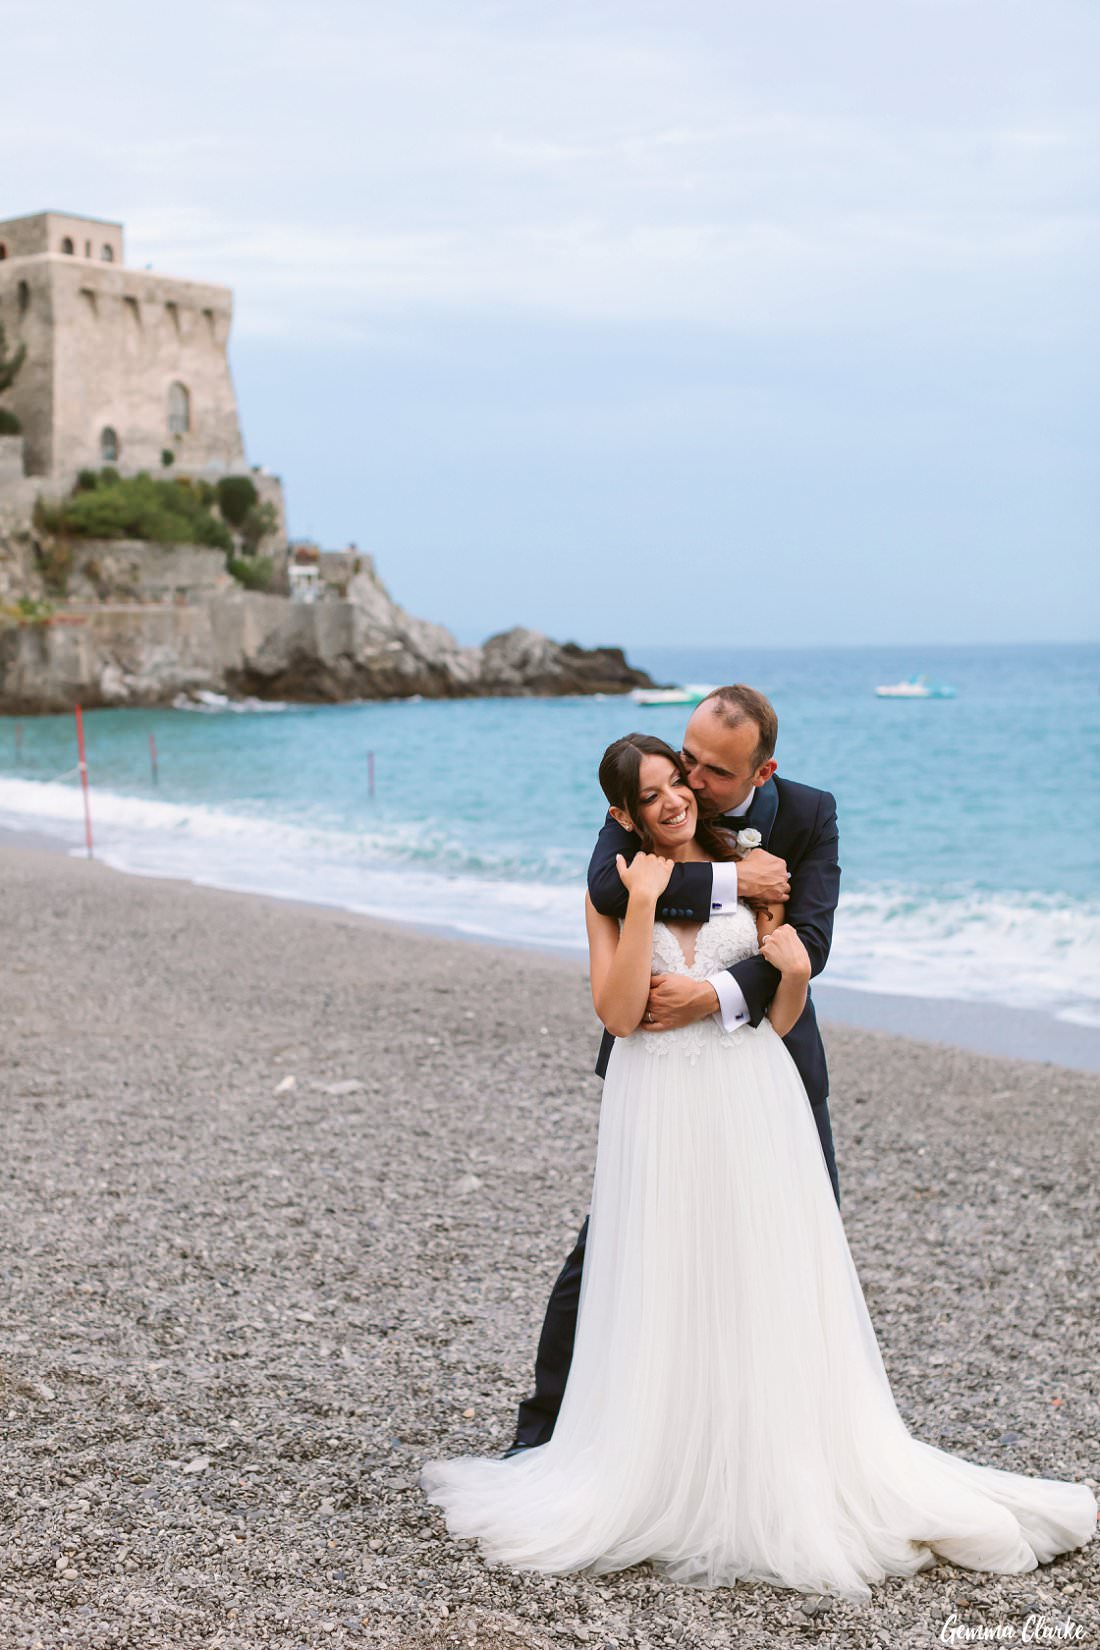 Kisses for the bride whilst on the pebble beach with Torre la Cerniola in the background at this Italian destination wedding